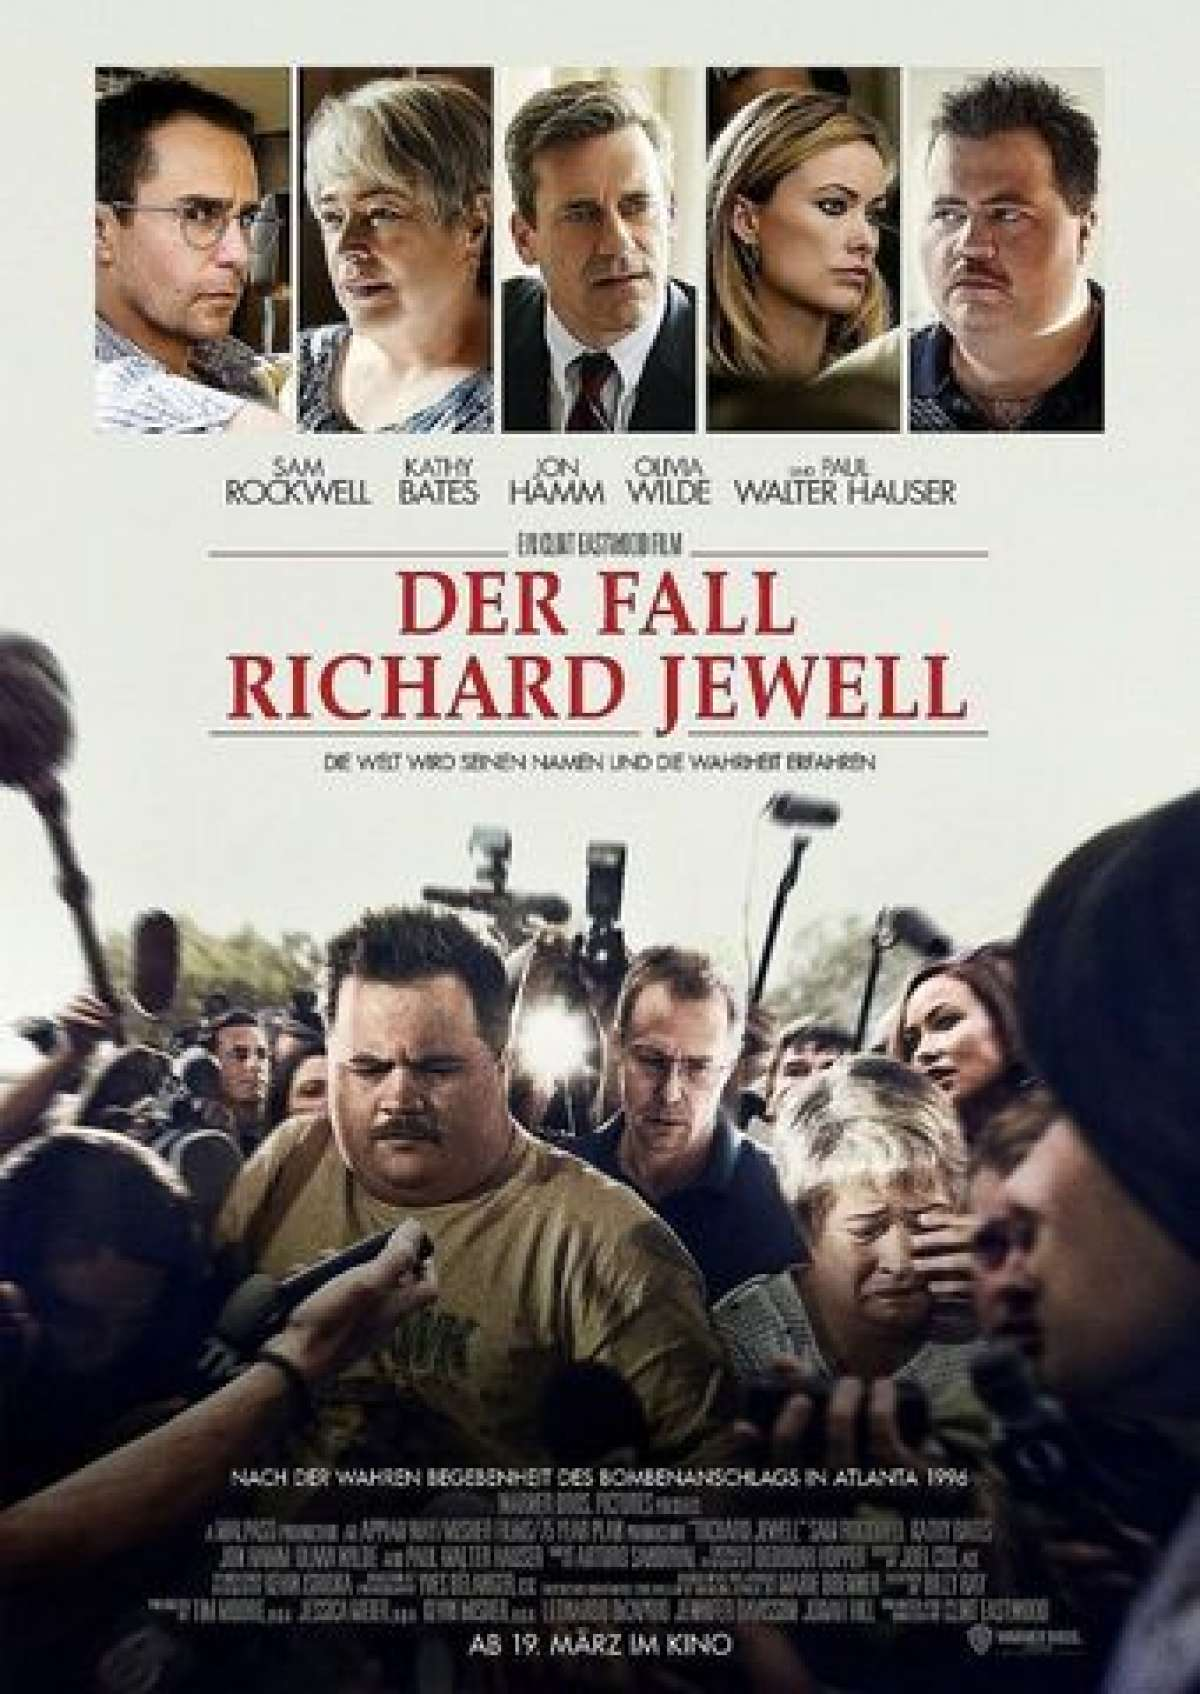 Der Fall Richard Jewell - Cineplex  - Warburg